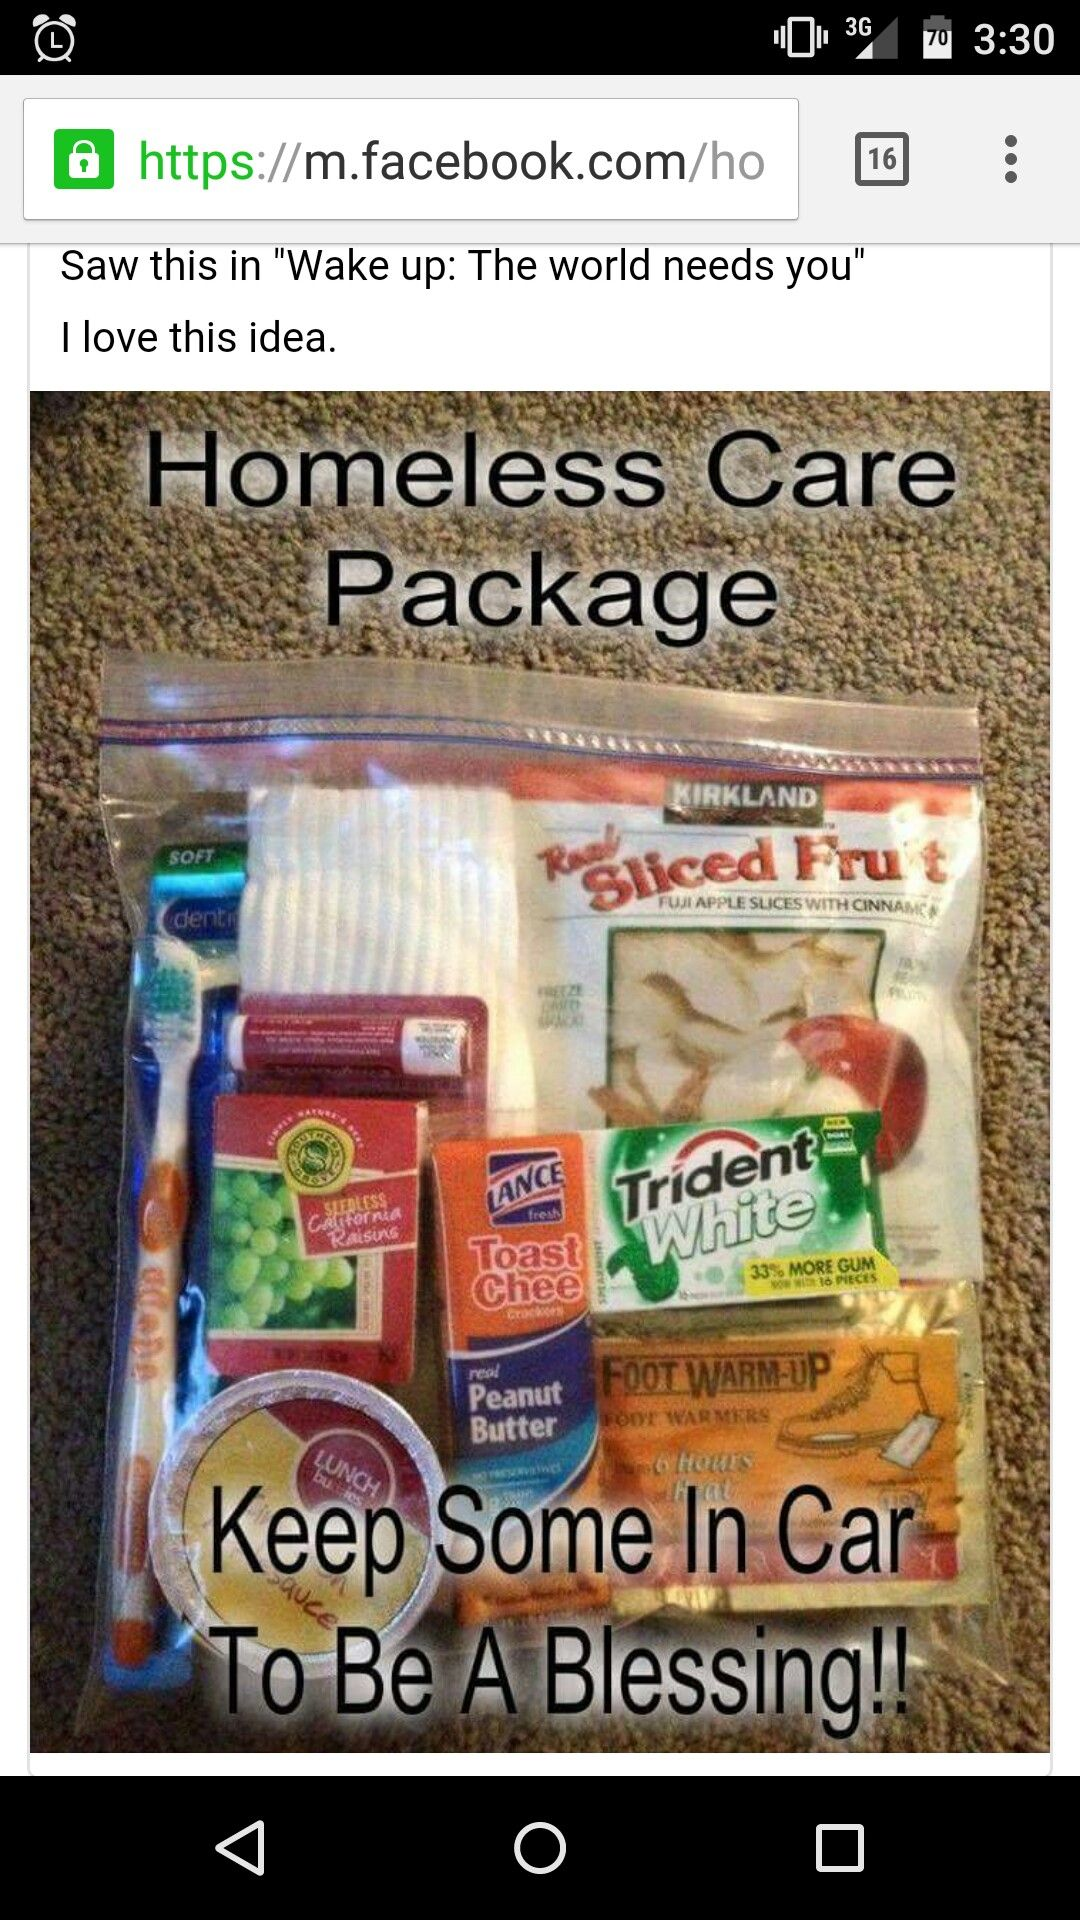 Pin by Carole T on Good things for others Homeless care